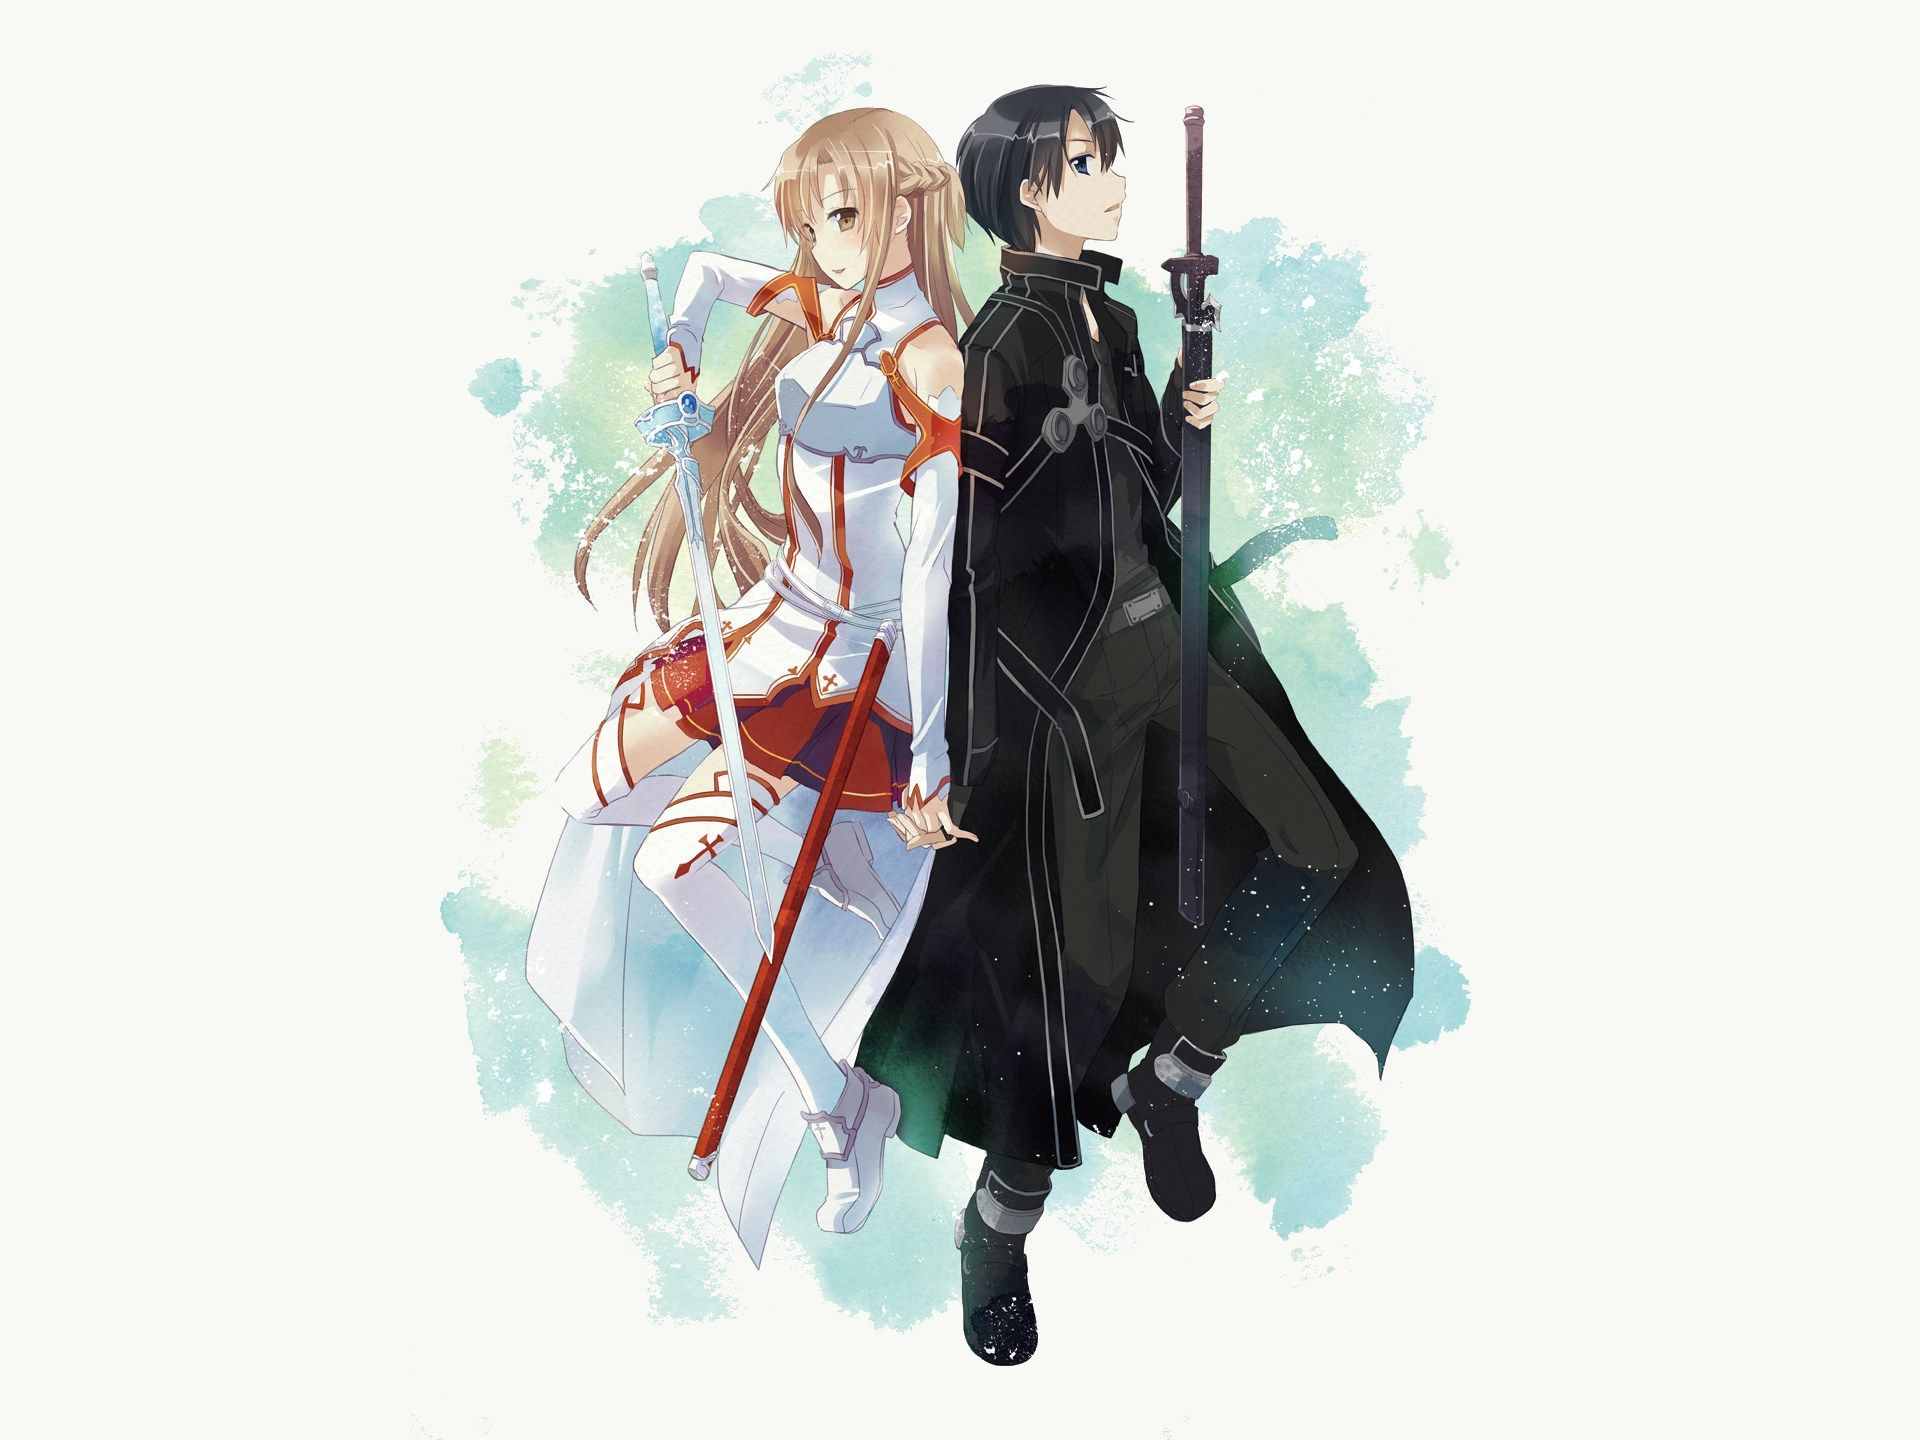 Kirito swords asuna and kirito kirito and asuna lemon fanfiction sword